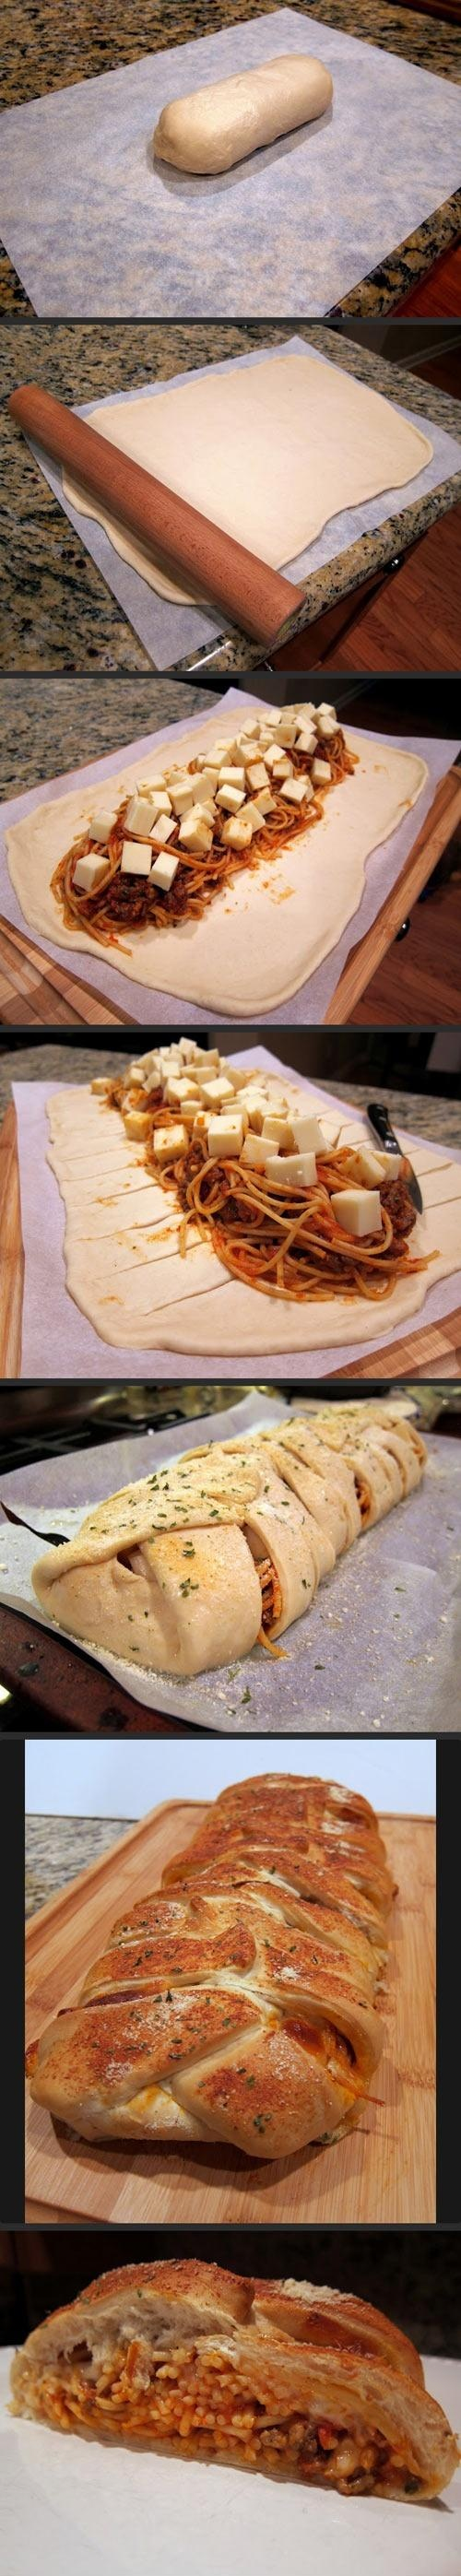 Spaghetti bread 1	loaf bread dough, thawed or roll-out pizza dough 6 oz	spaghetti, cooked 1 c	thick spaghetti sauce (i use one with sausage in it already) 8 oz	mozzarella cheese 1	egg white parmesan cheese parsley flakes garlic powder Bake 450 30-35 min